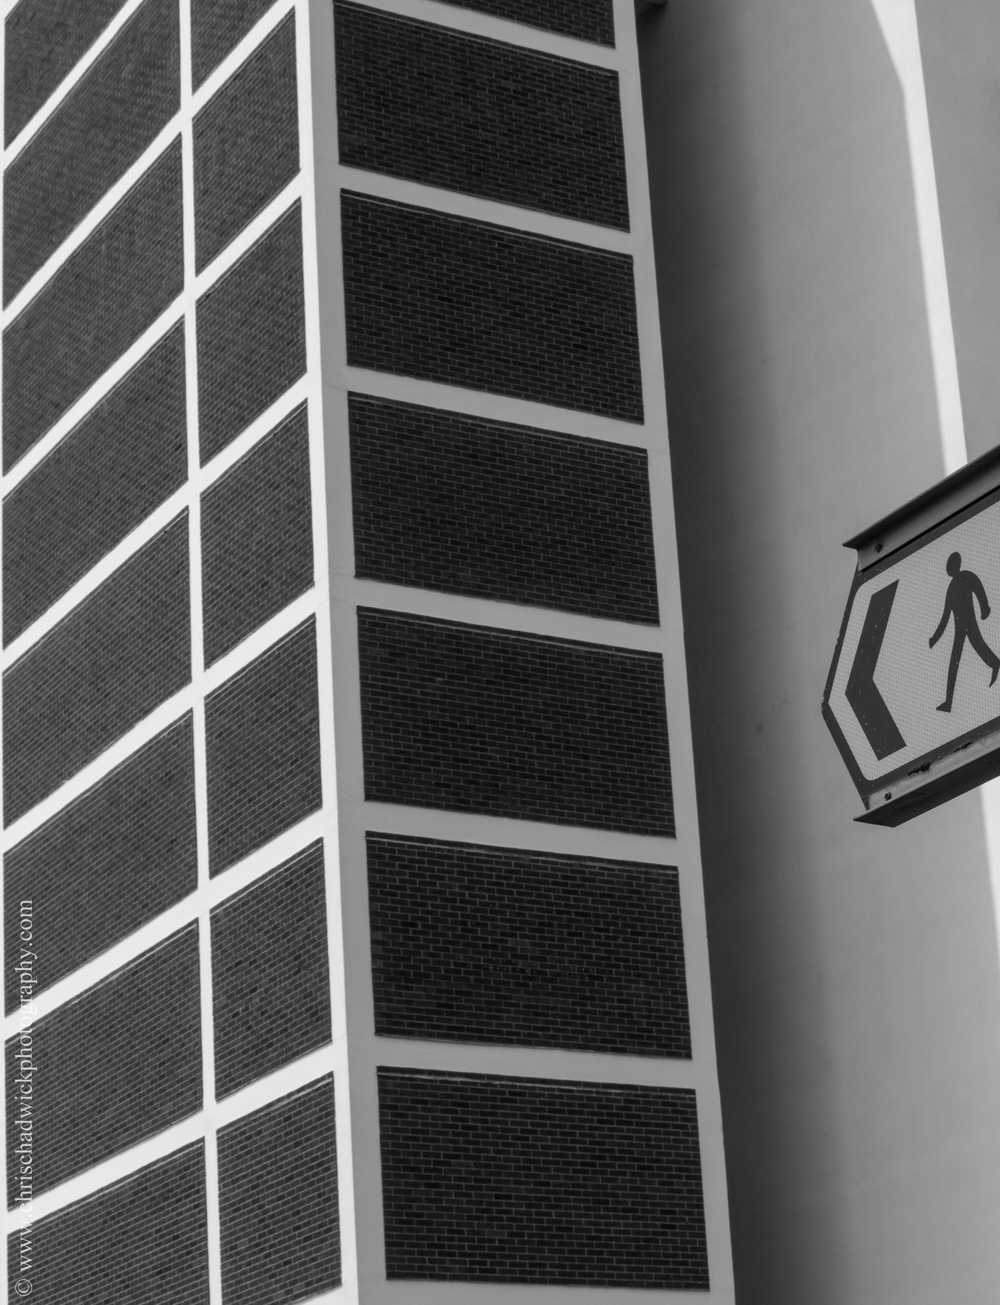 Distinct even if irregular shapes   I wasn't completely sure what type of image to use for this one, so I ended up choosing a fairly simple image showing rectangles and squares of brick used in the design of this block of flats. The signpost was kept in as it added a slight enigma to the image.